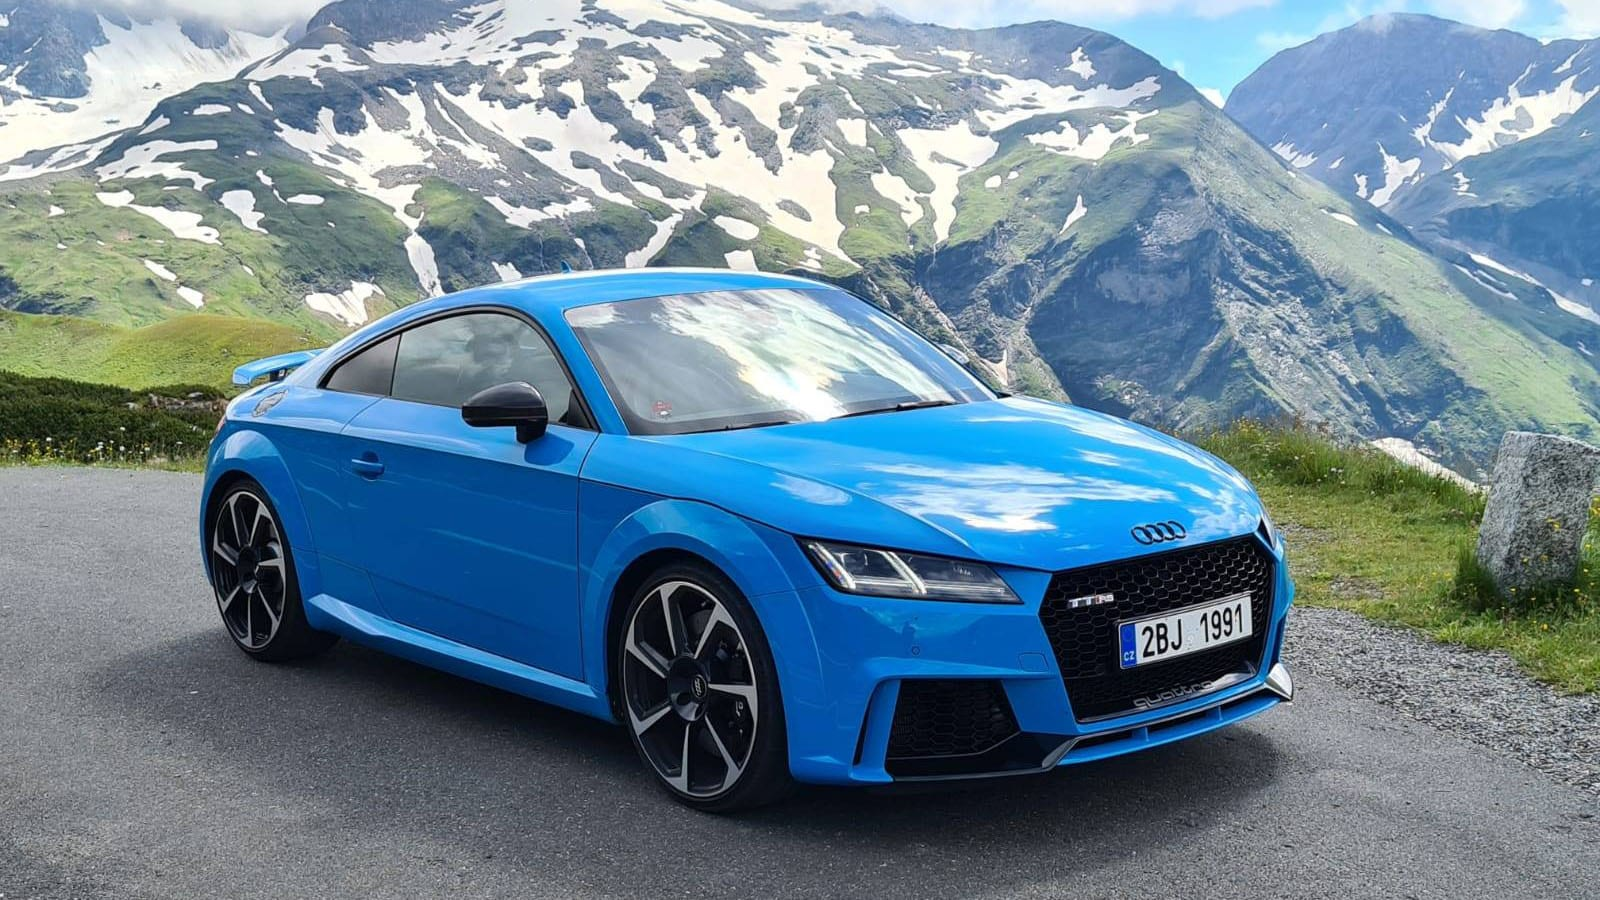 100-200 km/h: Audi TT RS RSR-Performance Stage 2